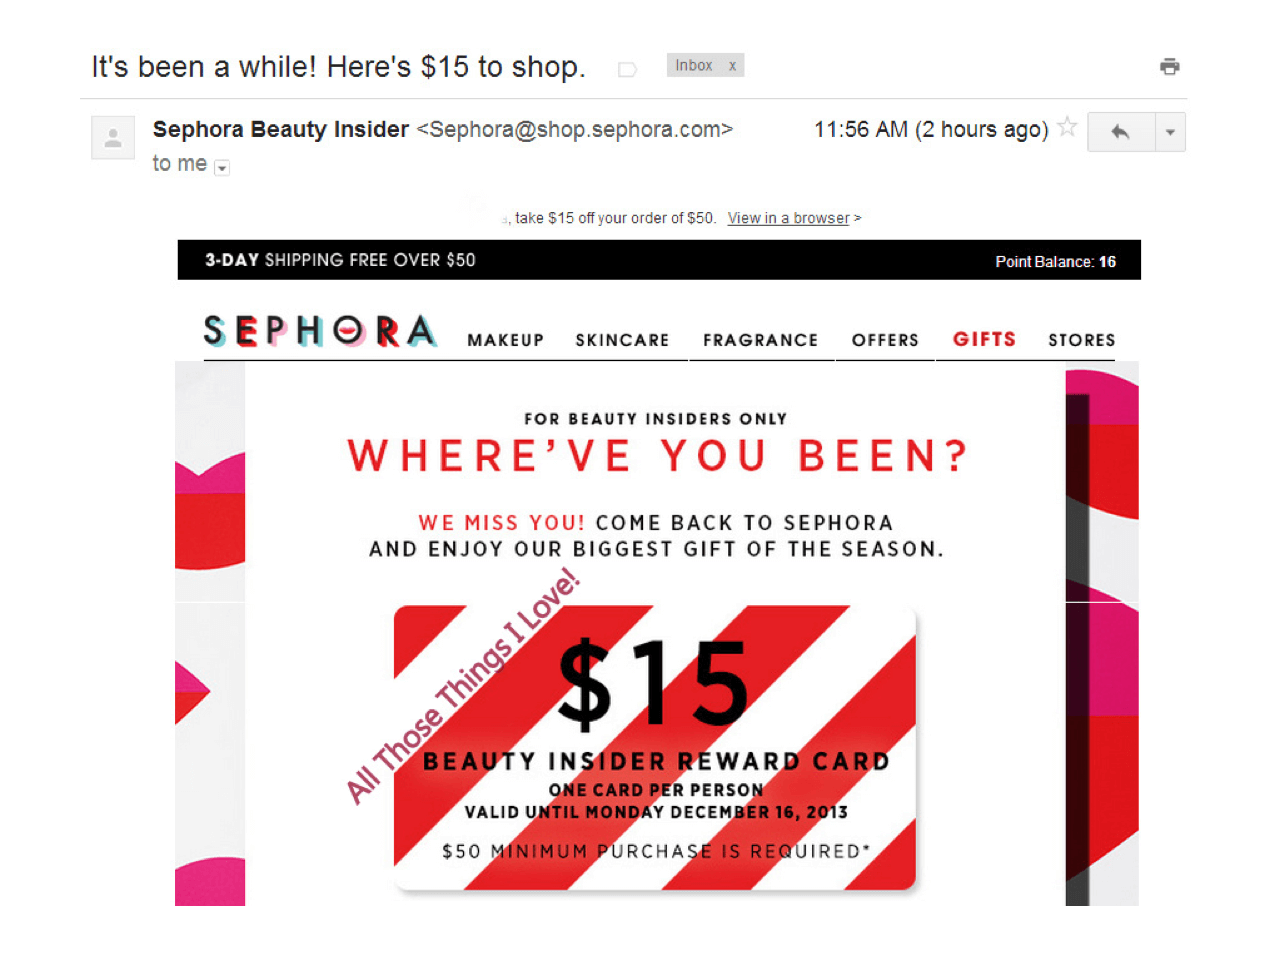 Sephora sends a Miss You email that offers a $15 reward card